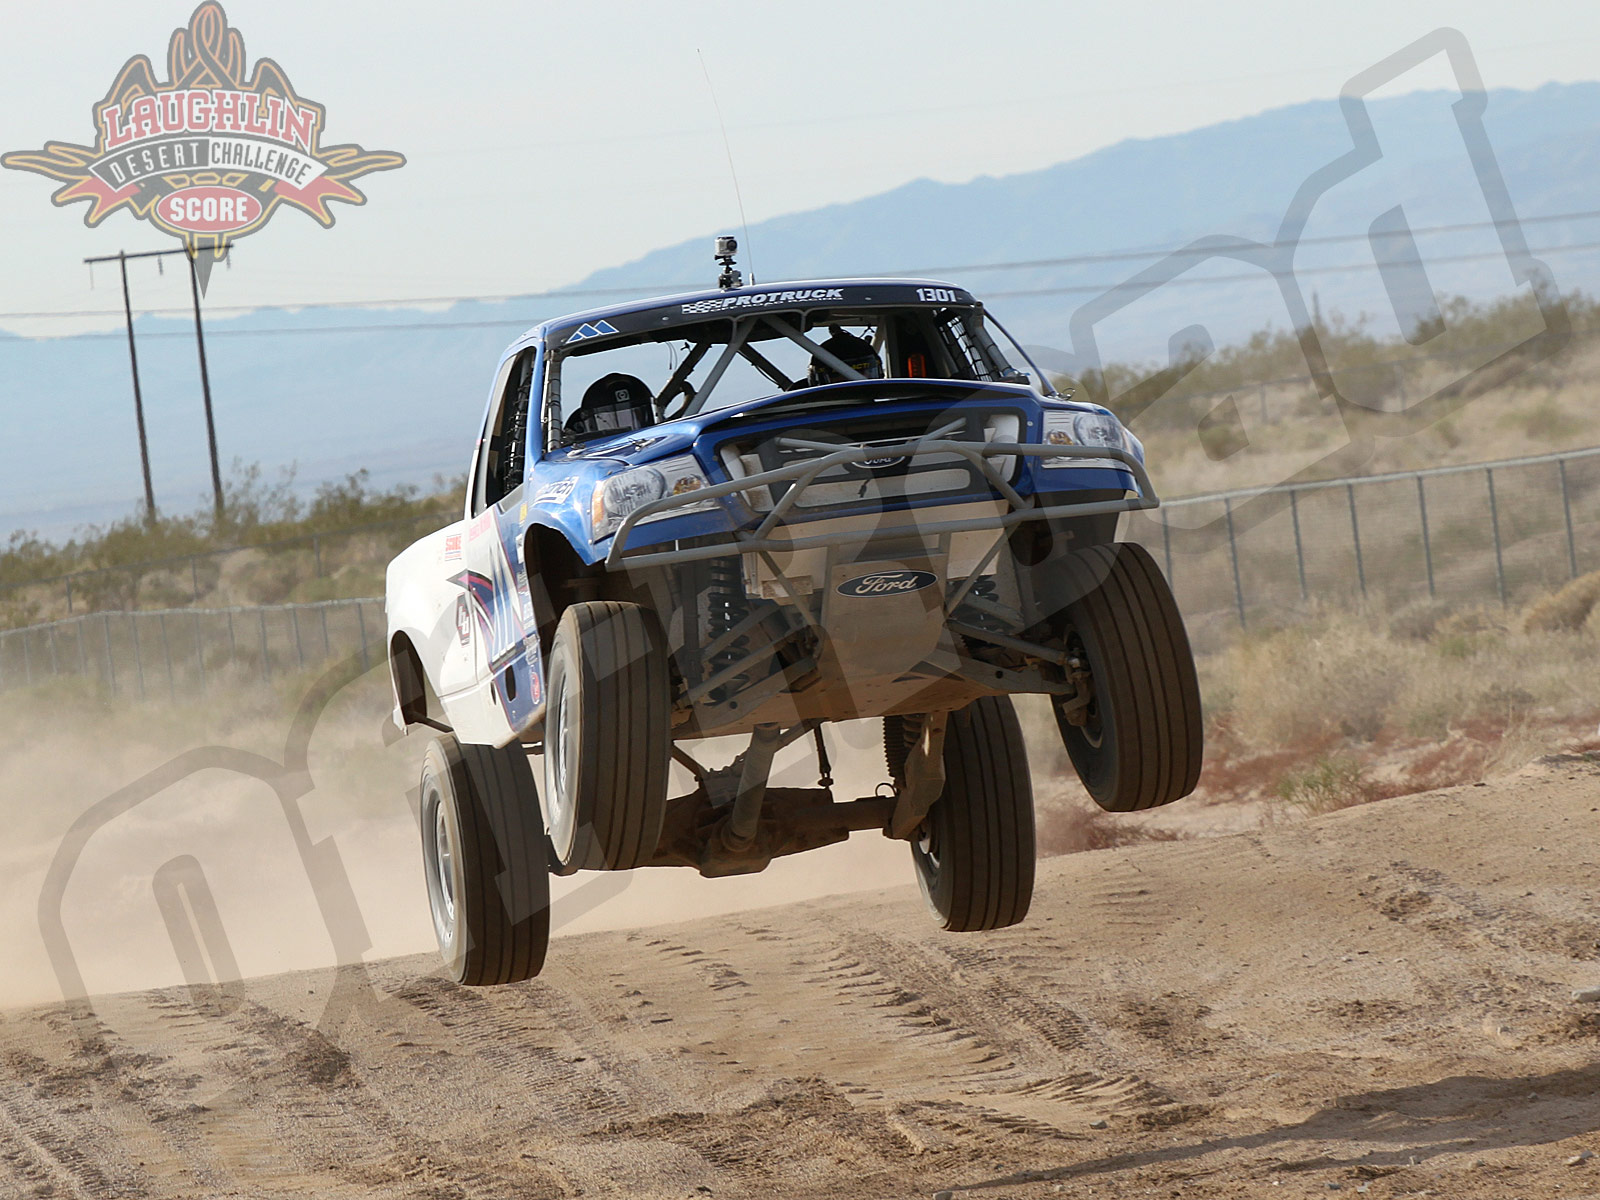 012011or 6600+2011 score laughlin desert challenge+truck classes